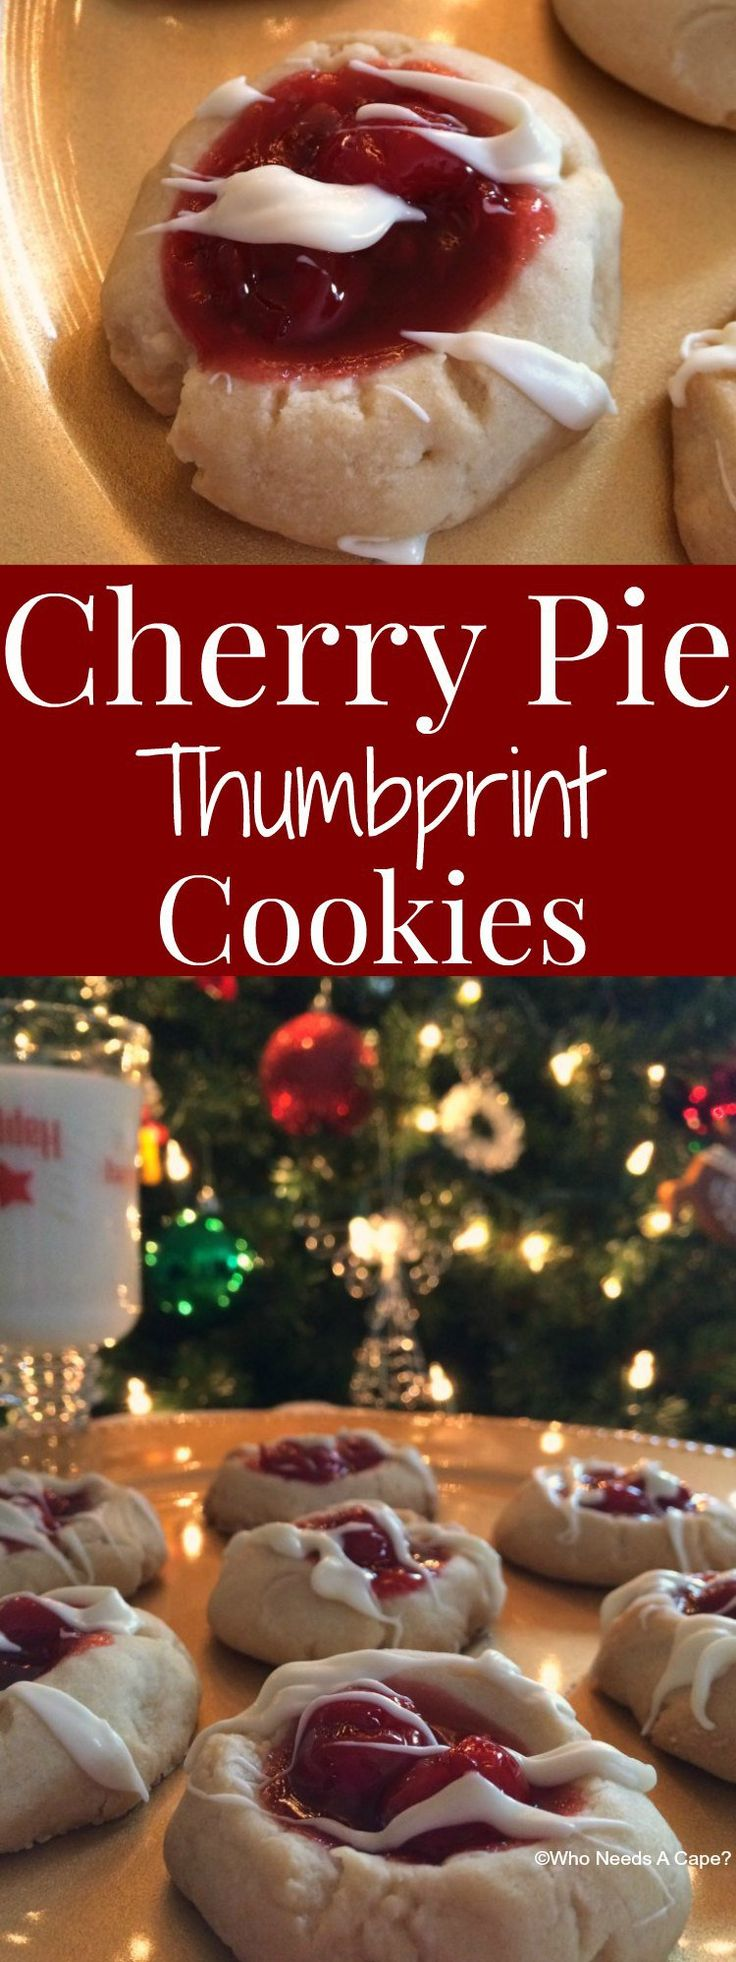 Cherry Pie Thumbprint Cookies such a delightful bit of goodness, great for the holidayseason! | Who Needs A Cape? {pinned over 5.3K times}